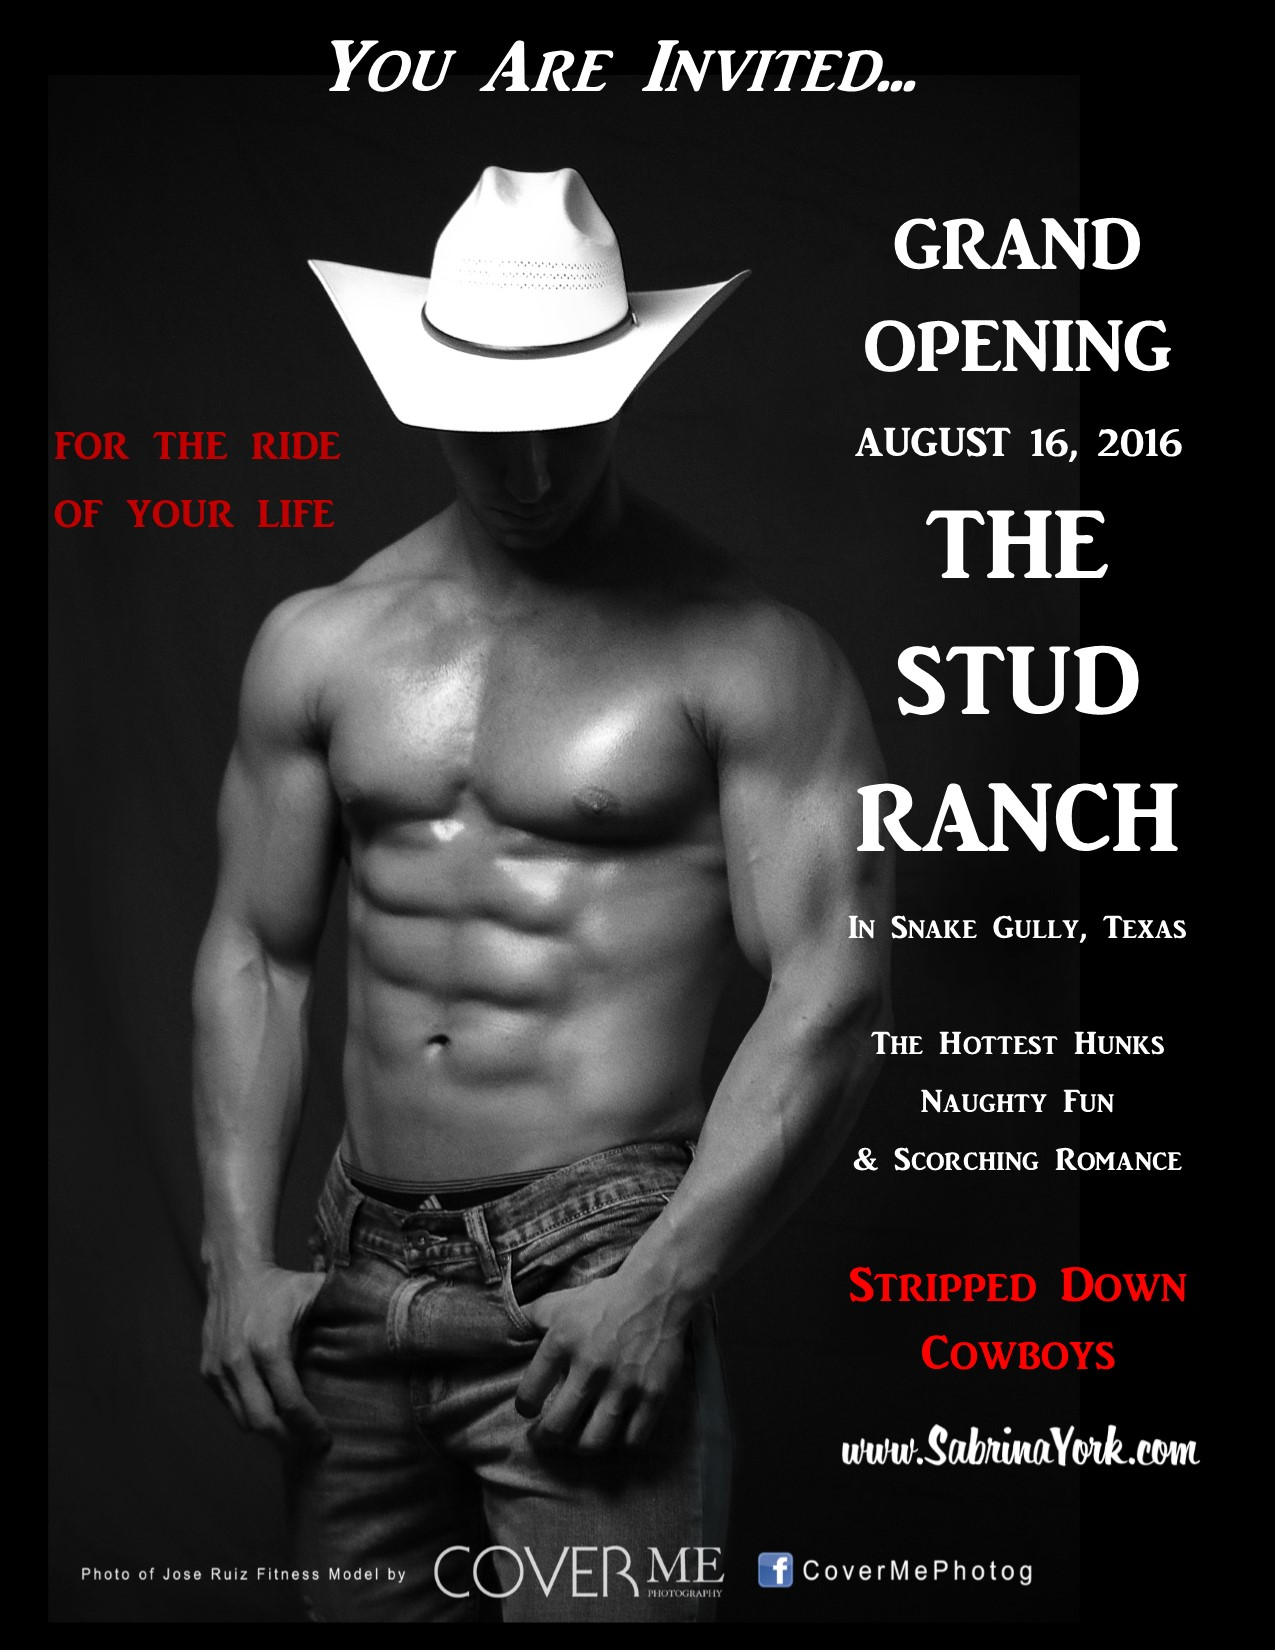 stud ranch promo flyer beckys cwboy